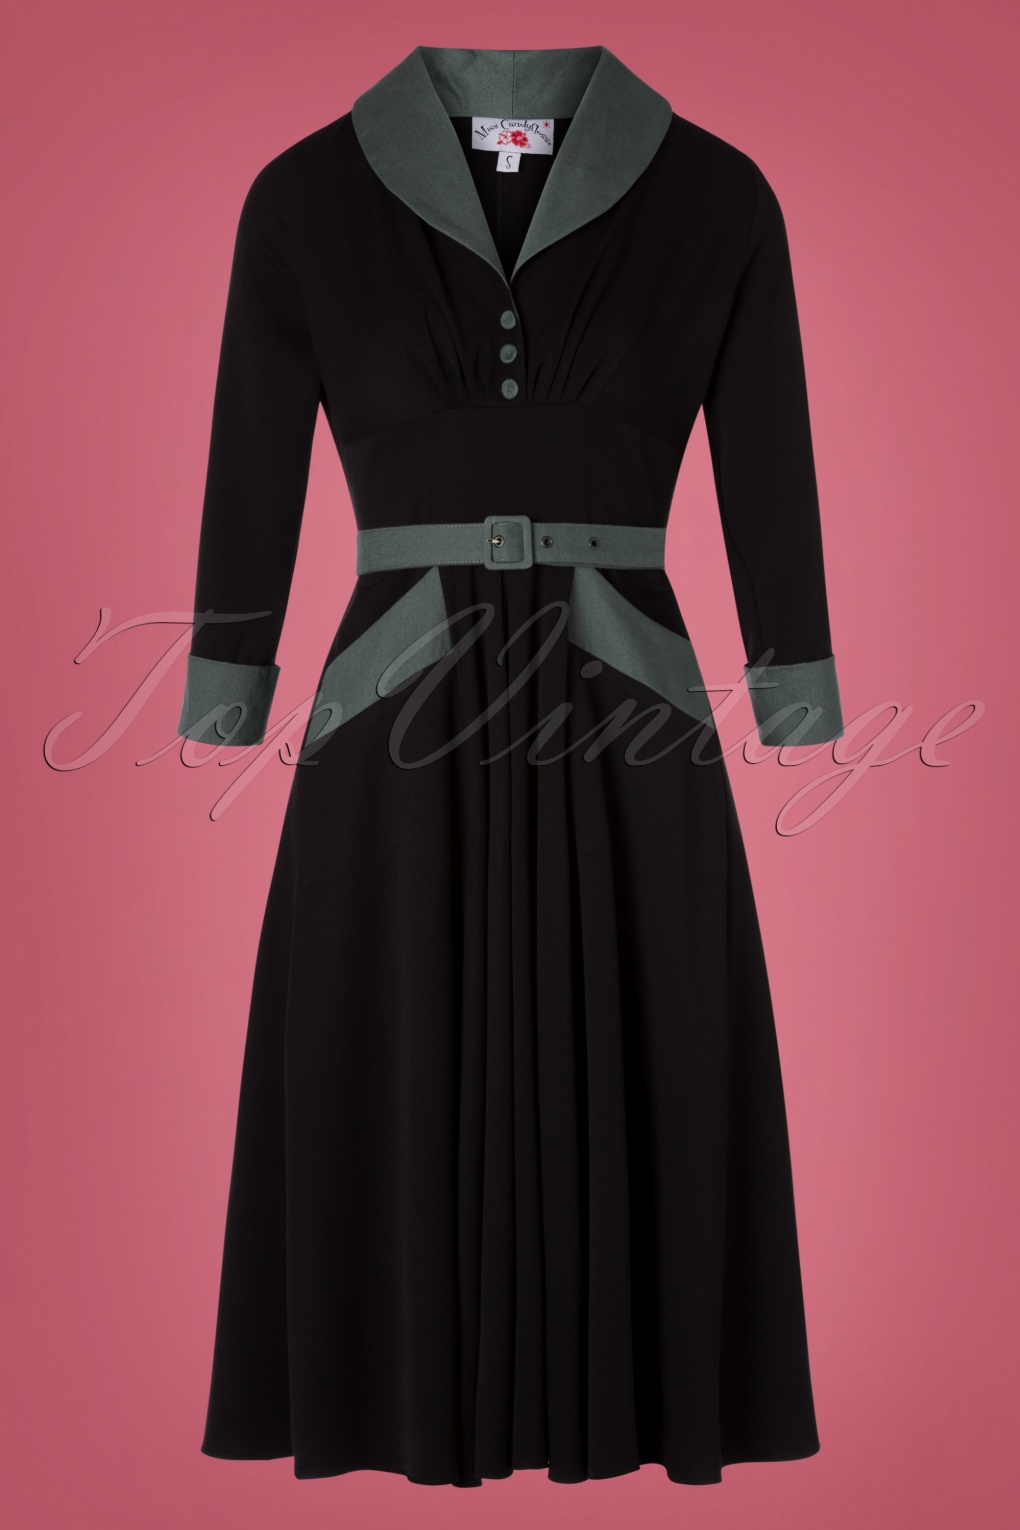 Fifties Dresses : 1950s Style Swing to Wiggle Dresses 50s Rosaleen Swing Dress in Black £101.02 AT vintagedancer.com